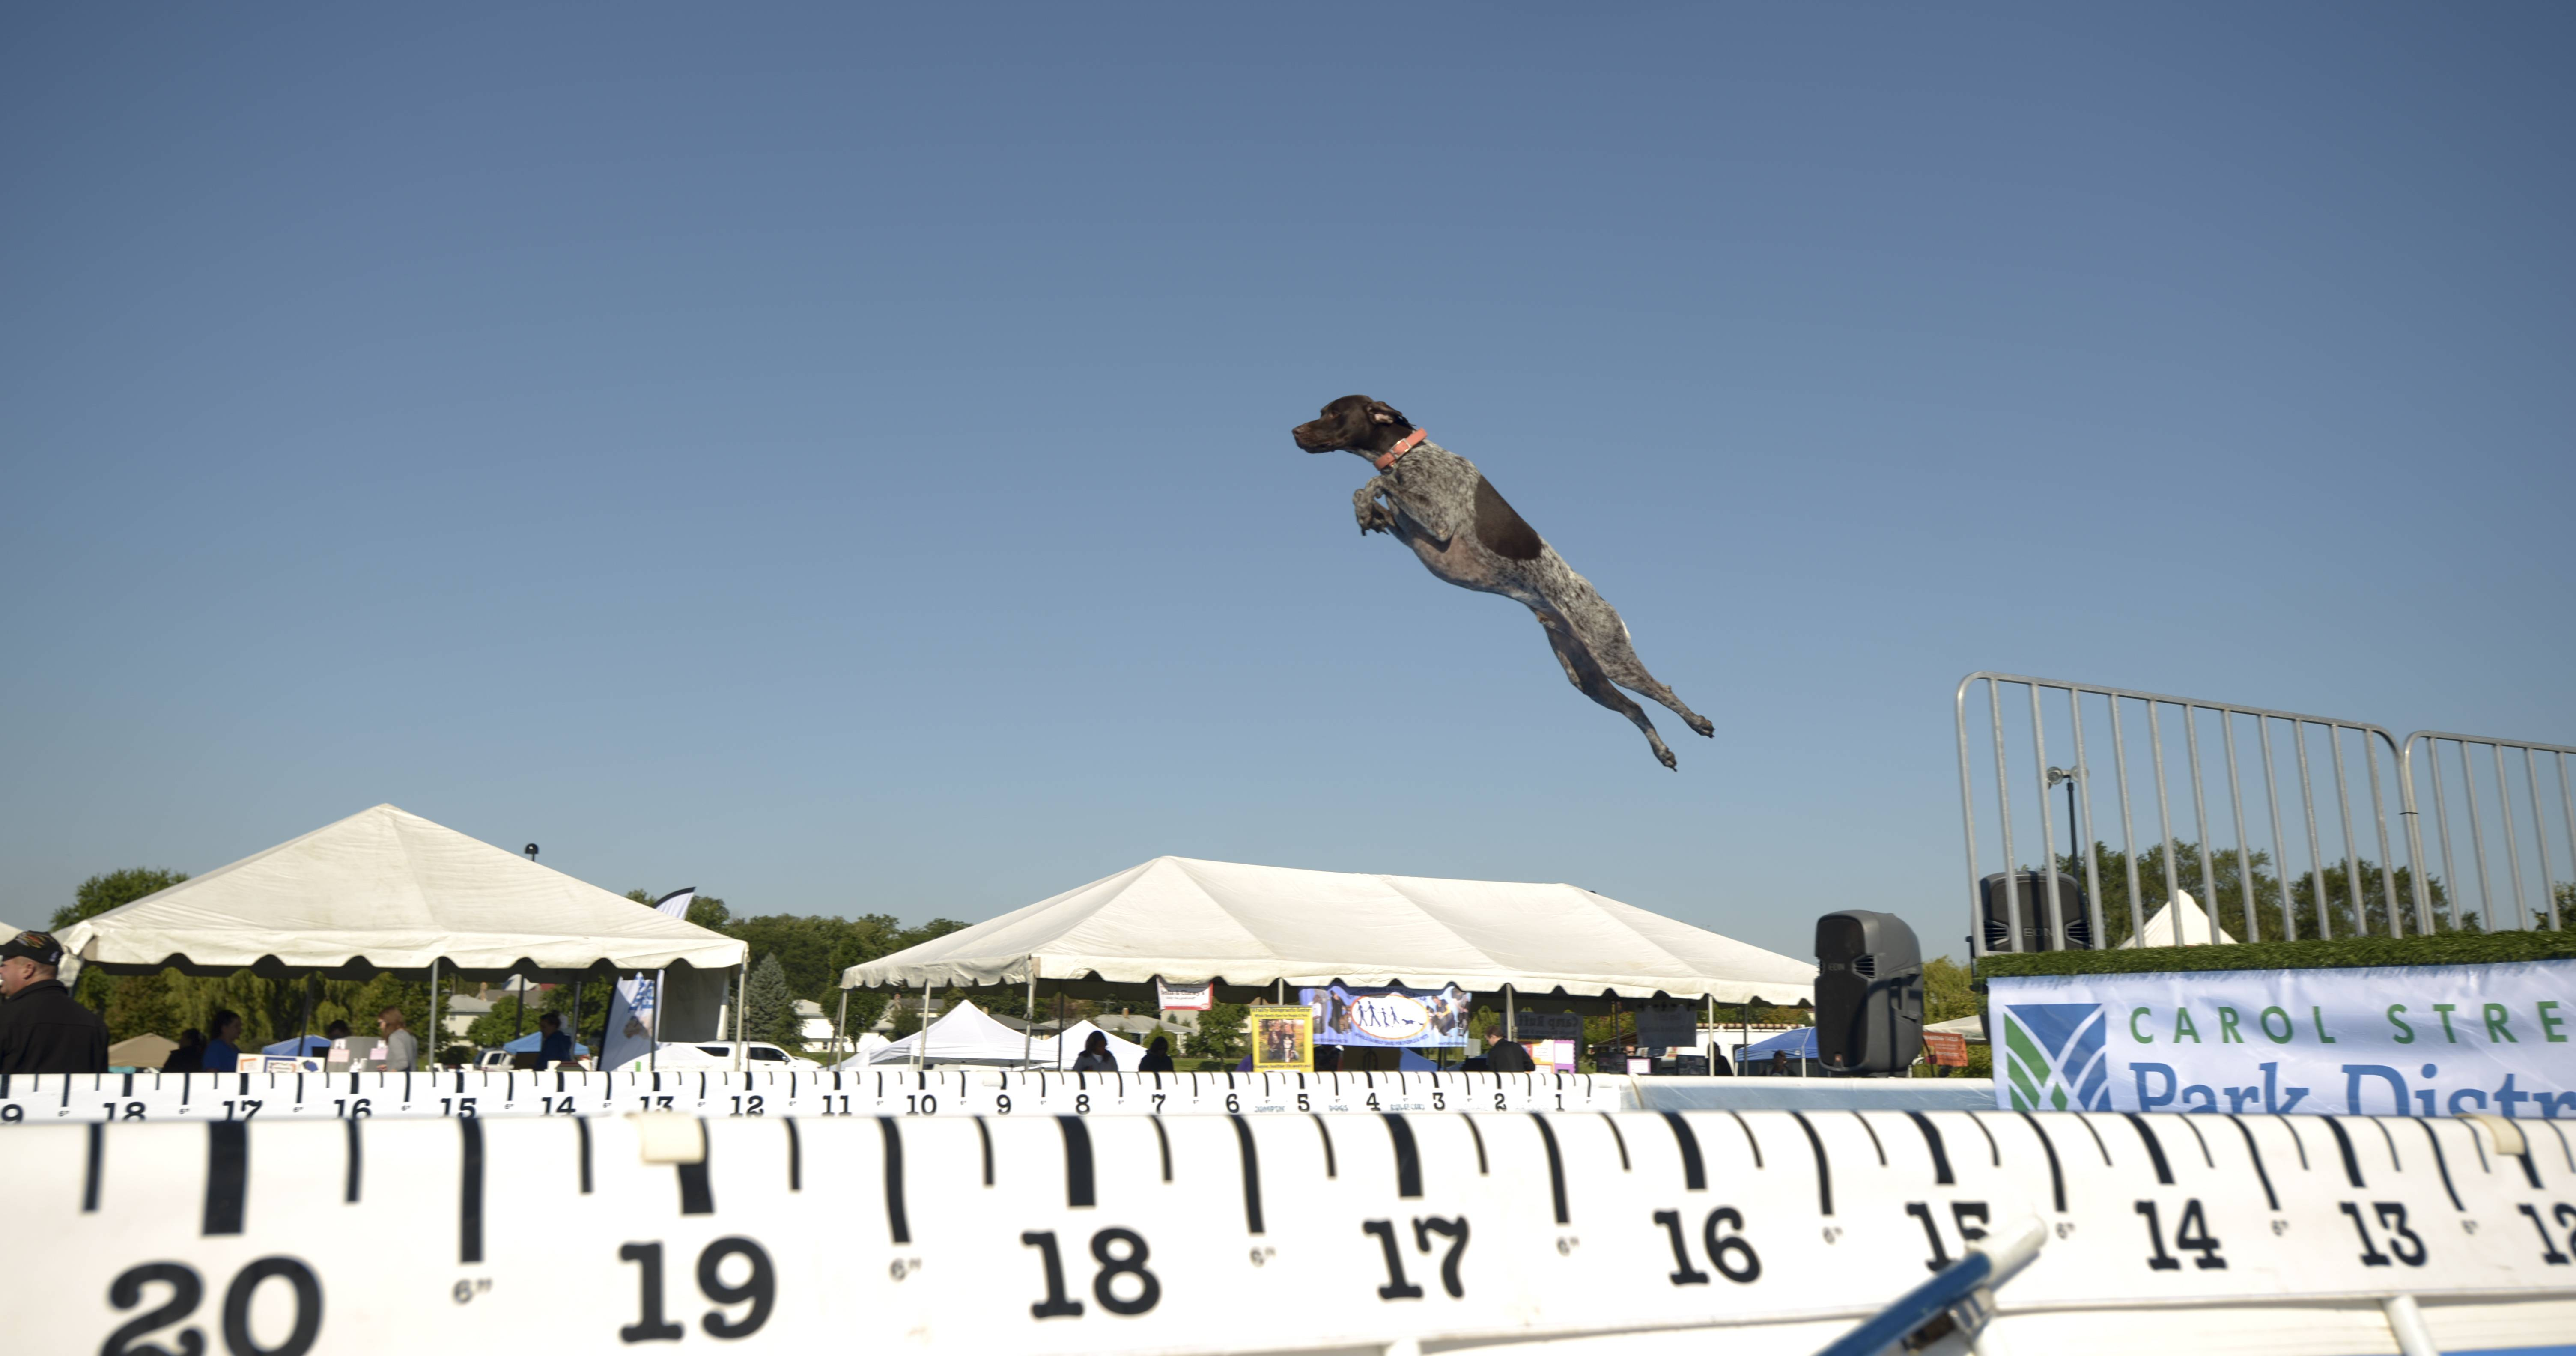 Charlie, a German shorthaired pointer from Aurora, flies through the air as he leaps off the dock into a pool chasing after a water toy during Carol Stream Park District's 6th annual CSBarks Dog Festival.